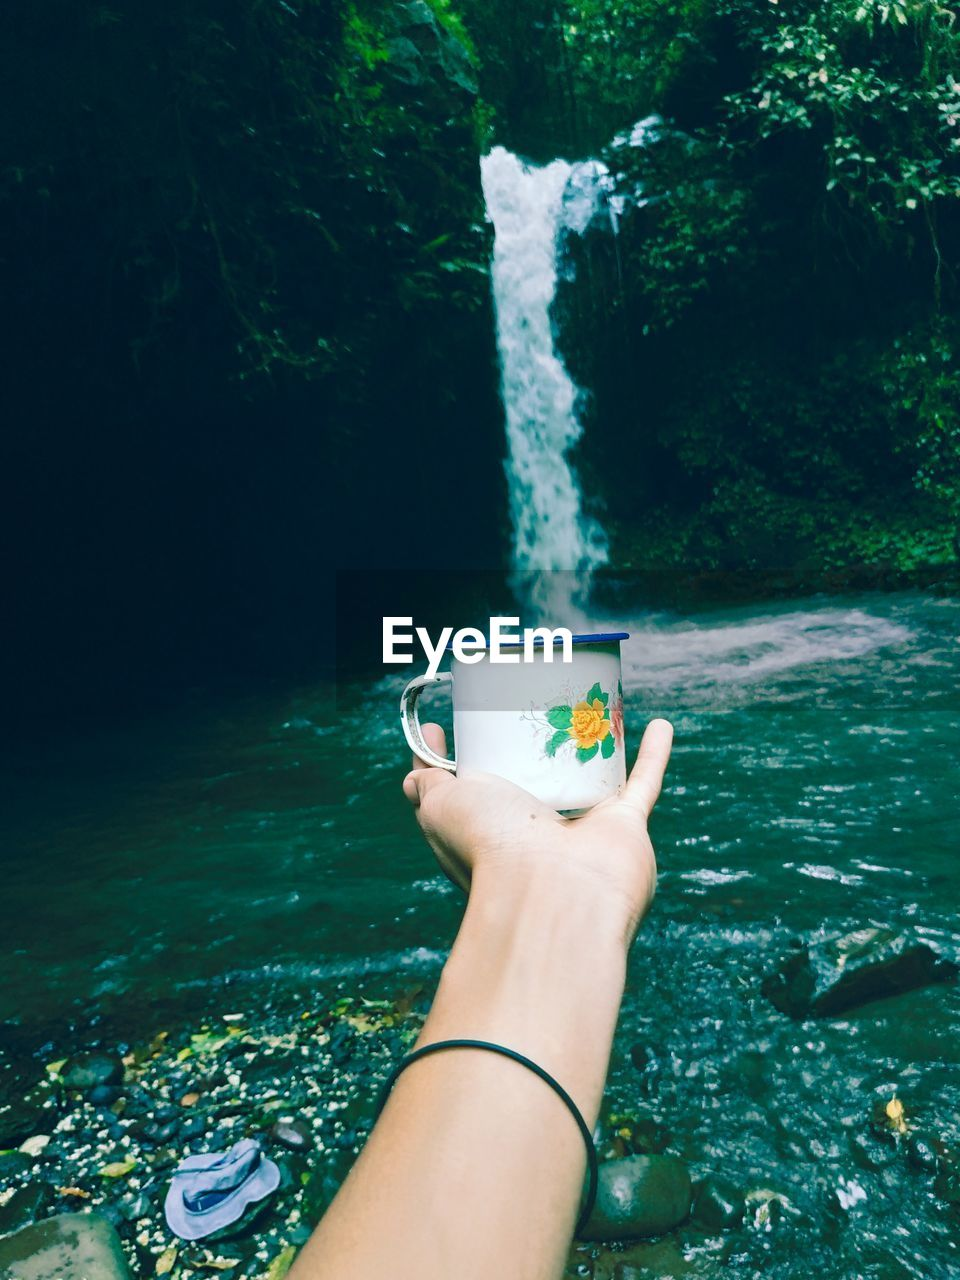 human hand, hand, water, one person, human body part, nature, holding, day, real people, lifestyles, personal perspective, refreshment, leisure activity, sea, unrecognizable person, drink, plant, food and drink, outdoors, glass, finger